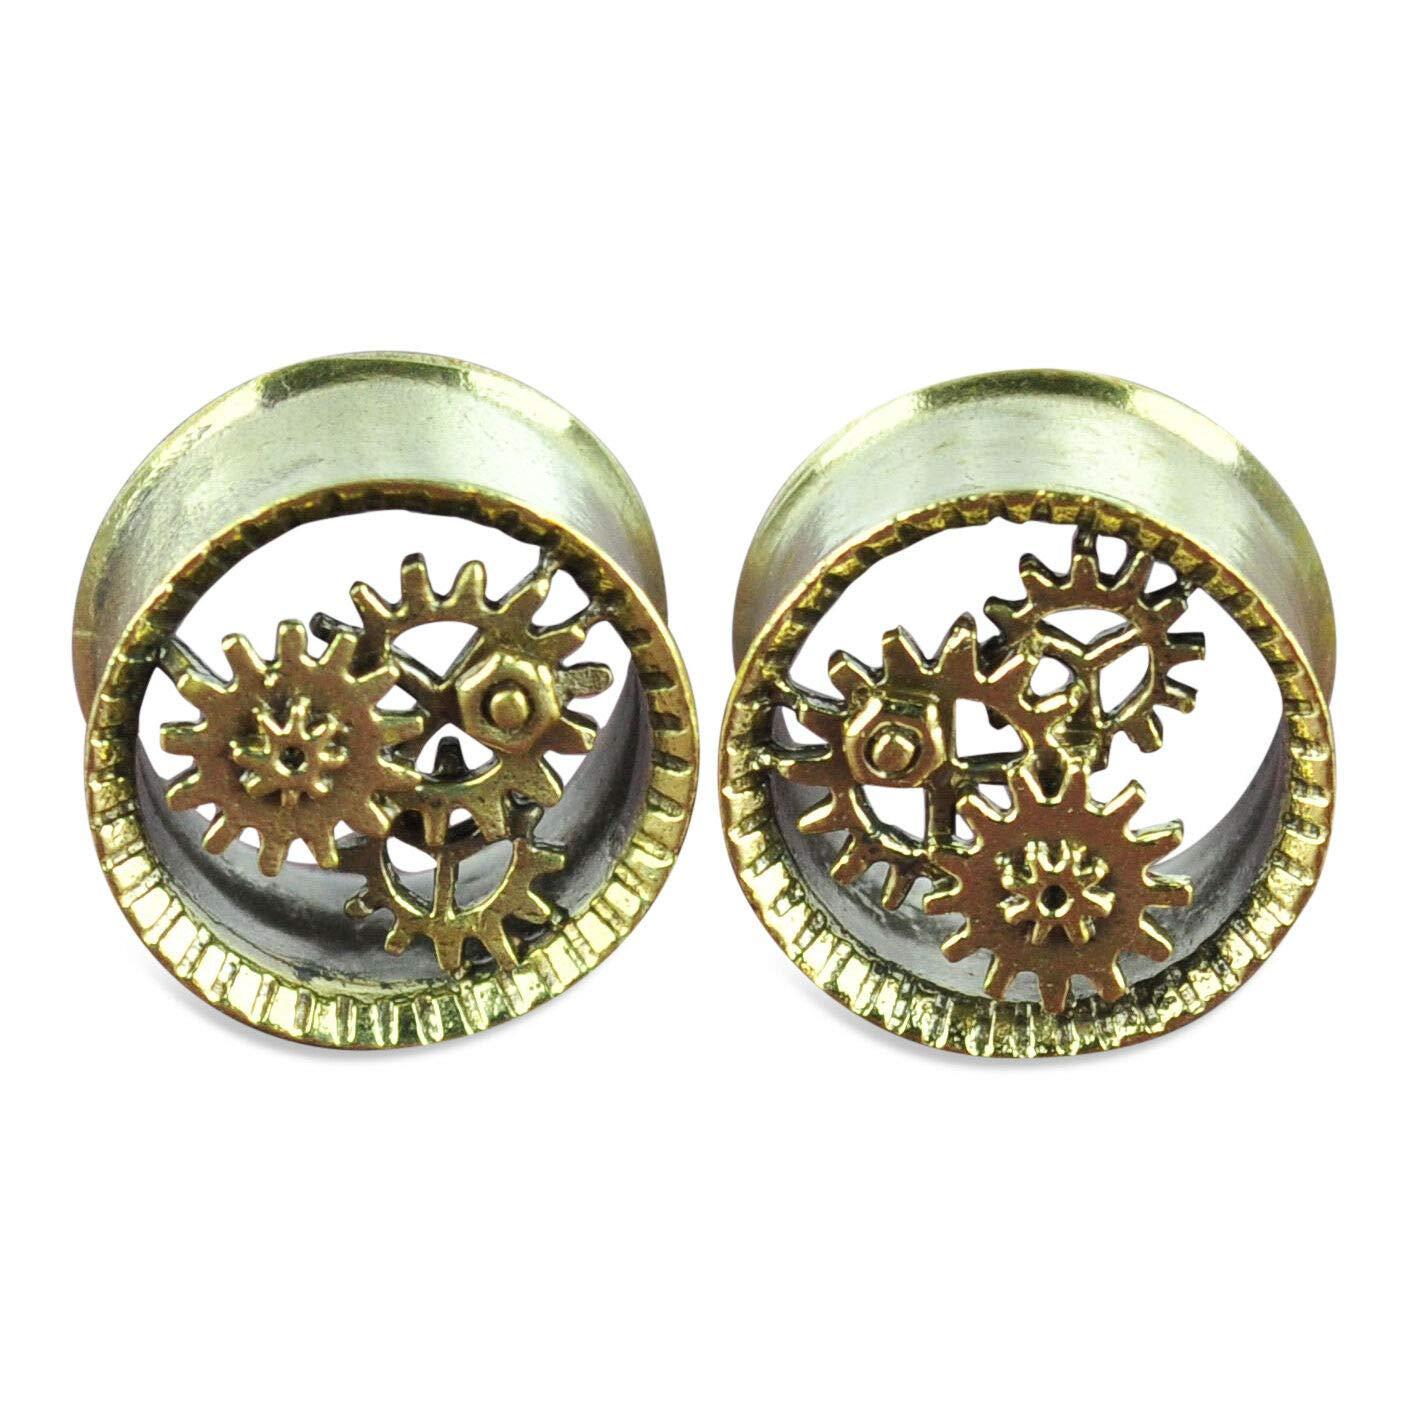 yati_gj 1 Pair Brass Tunnels with Steampunk Gears Ear Gauges 12 mm